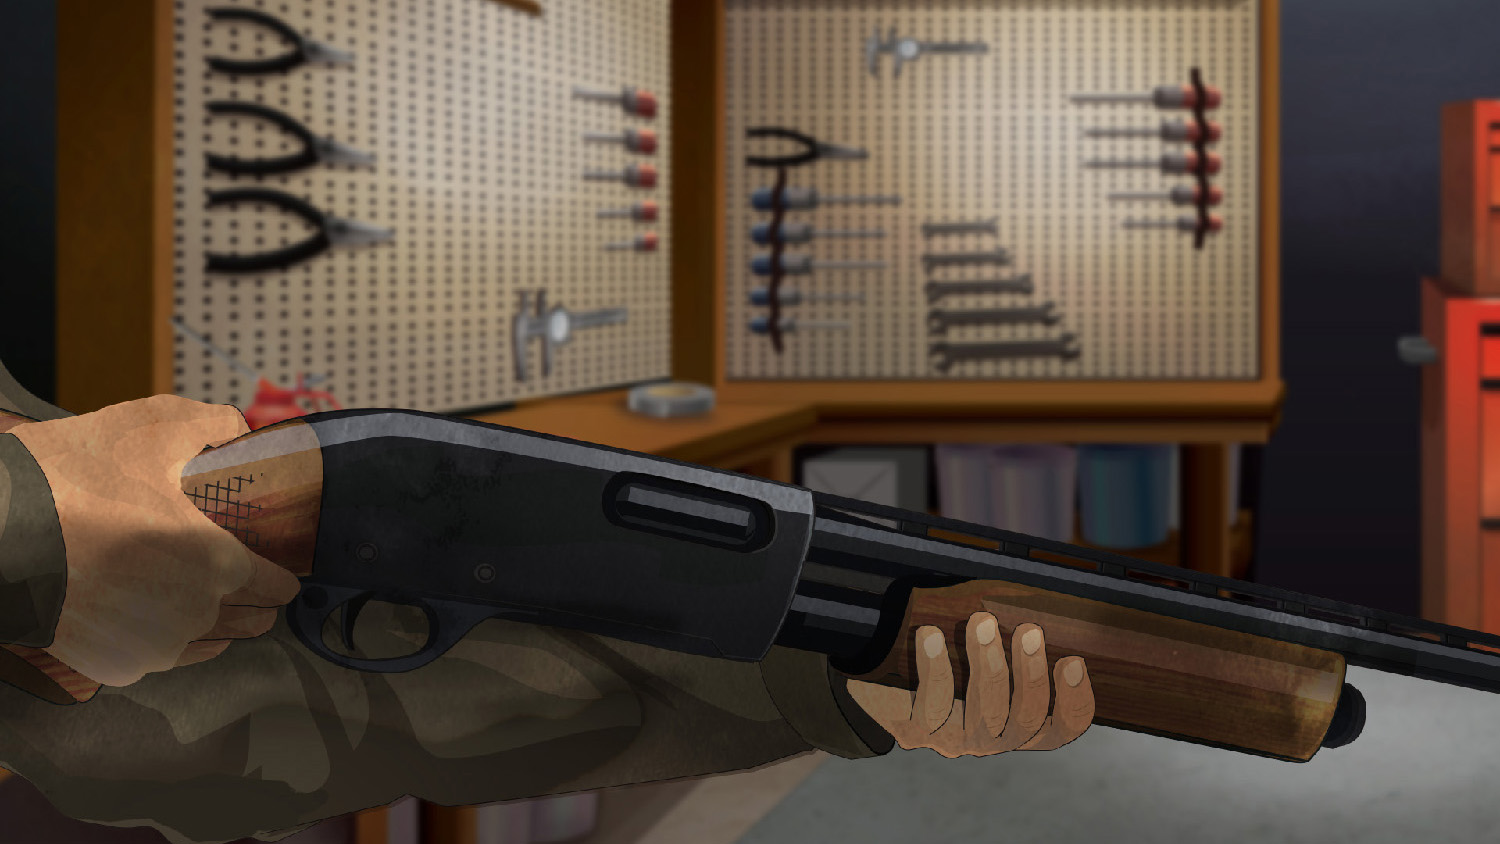 Illustration of a man's hands holding a pump action rifle.